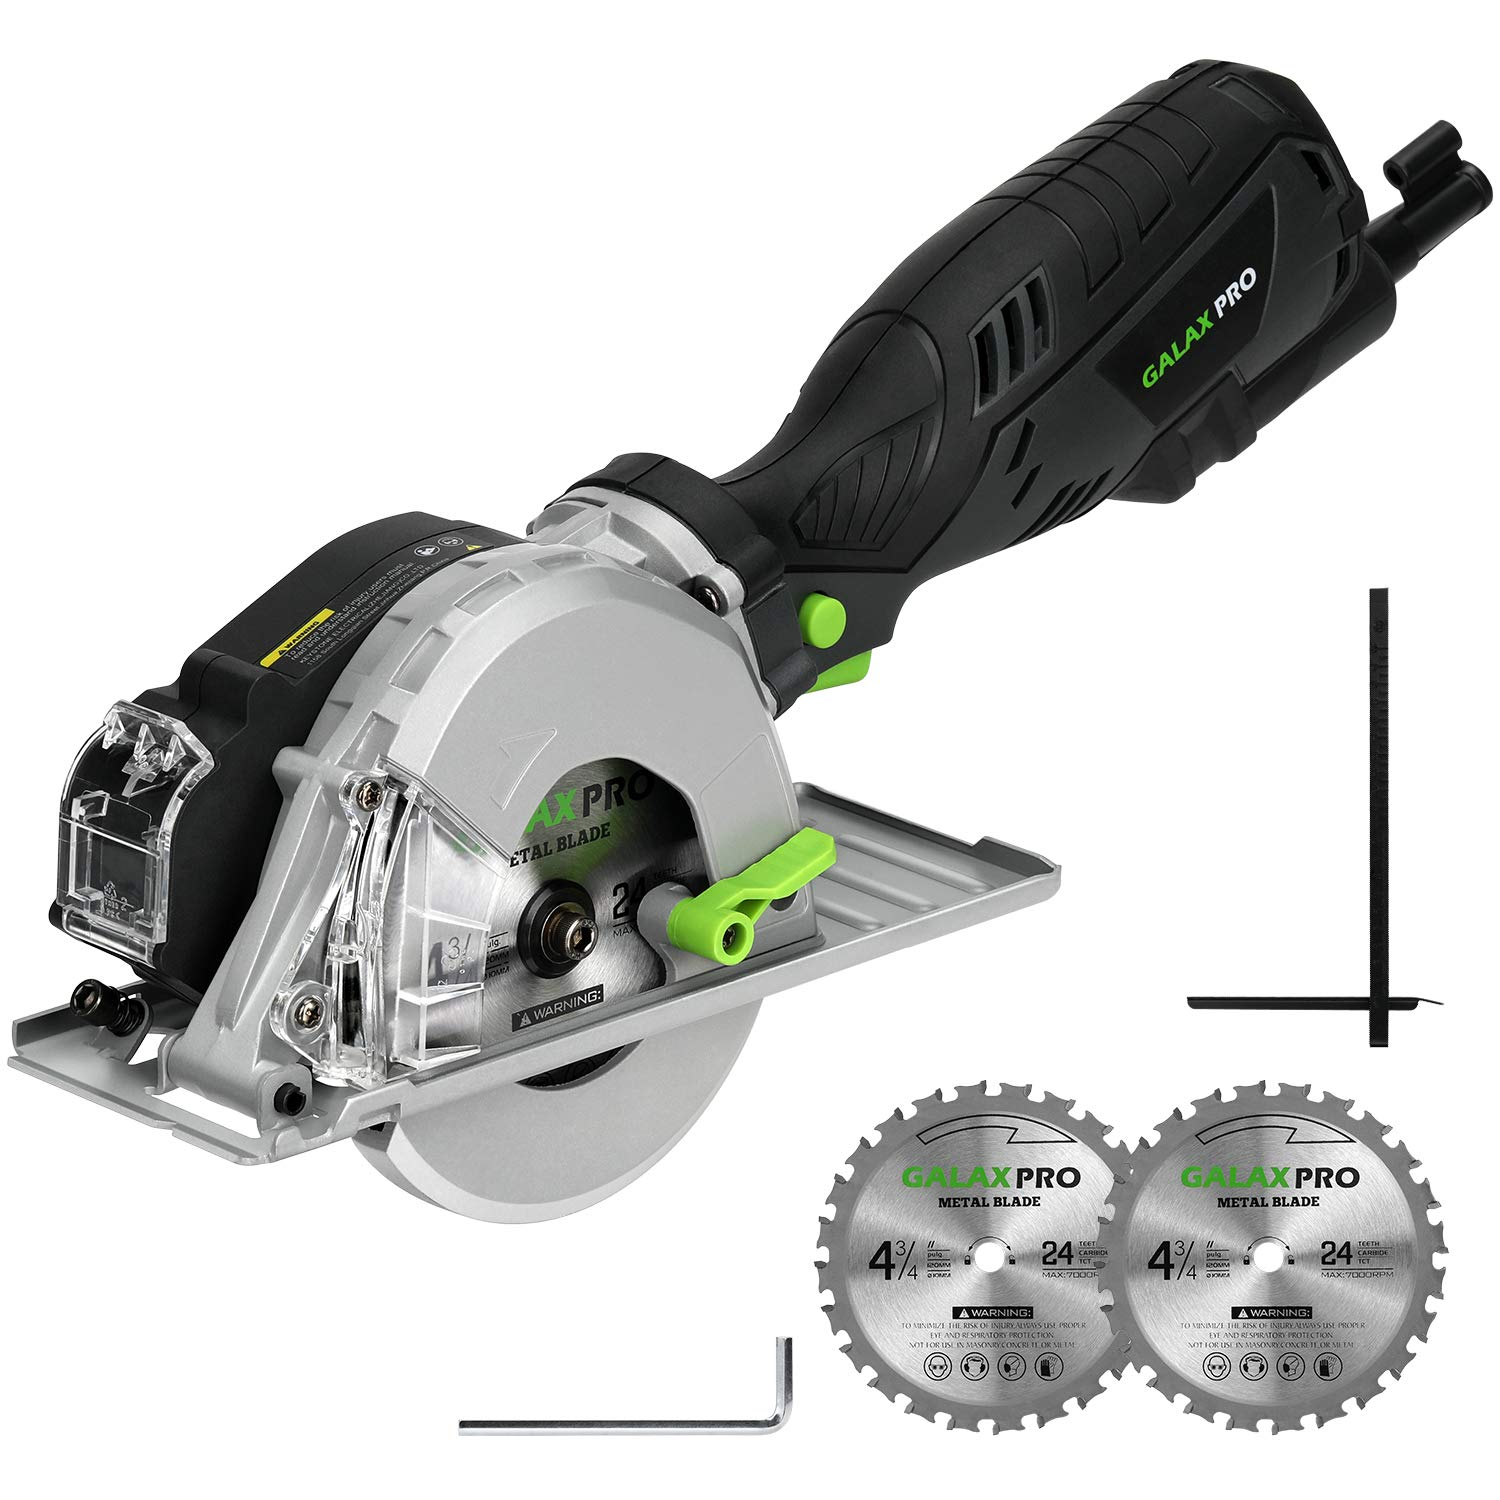 Metal Cutting Circular Saw, GALAX PRO 5.8A 3500RPM 4-3 4 In. Metal Circle Saw with 2PCS Metal-Cutting Saw Blades for Conduit, Pipe, Sheet Metal, Square Tubing Cutting